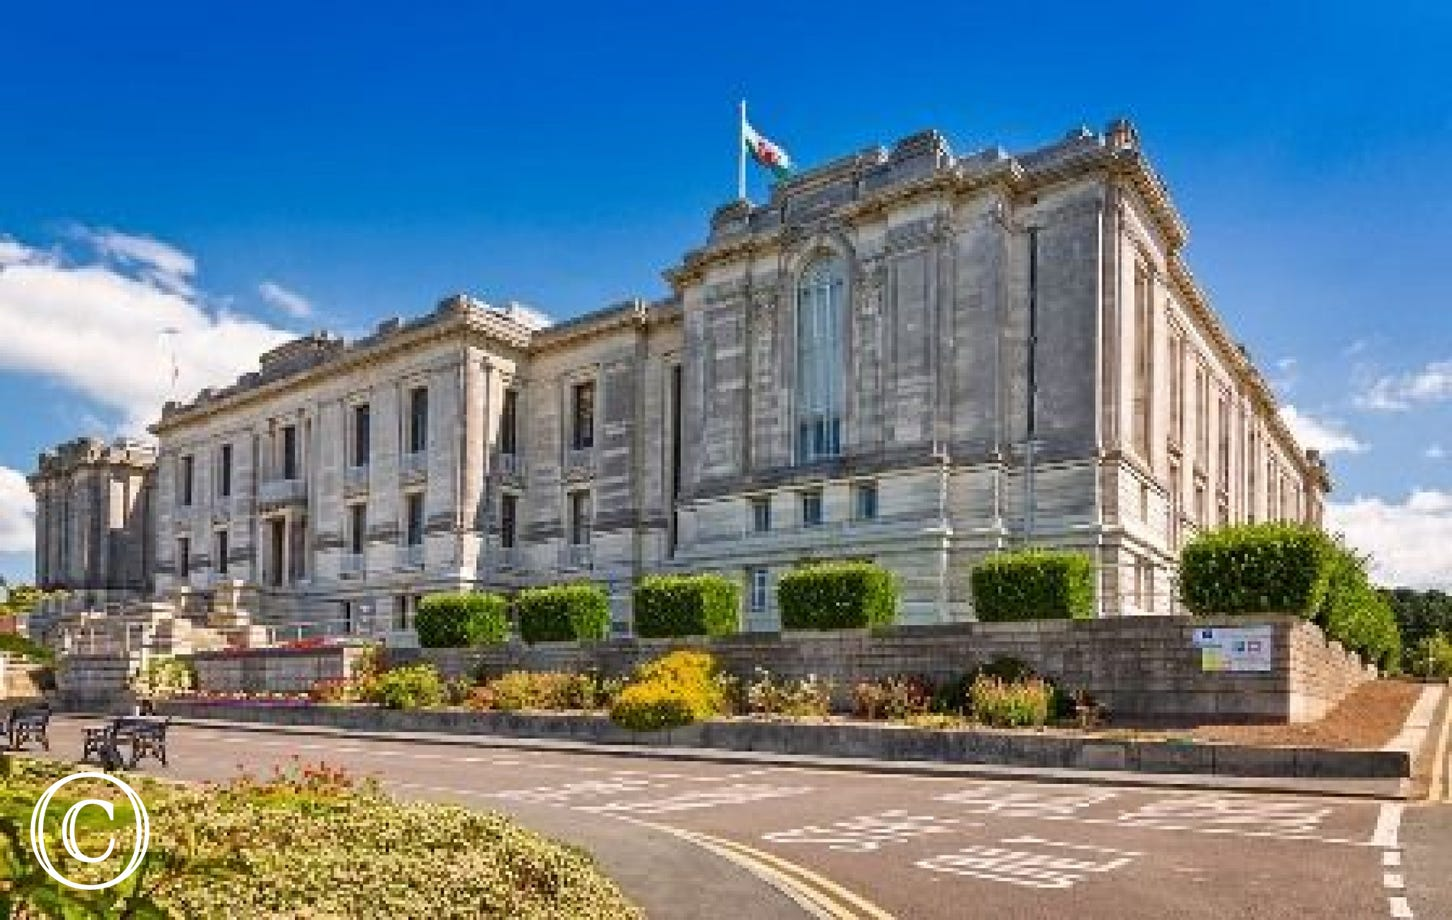 The National Library of Wales - Aberystwyth